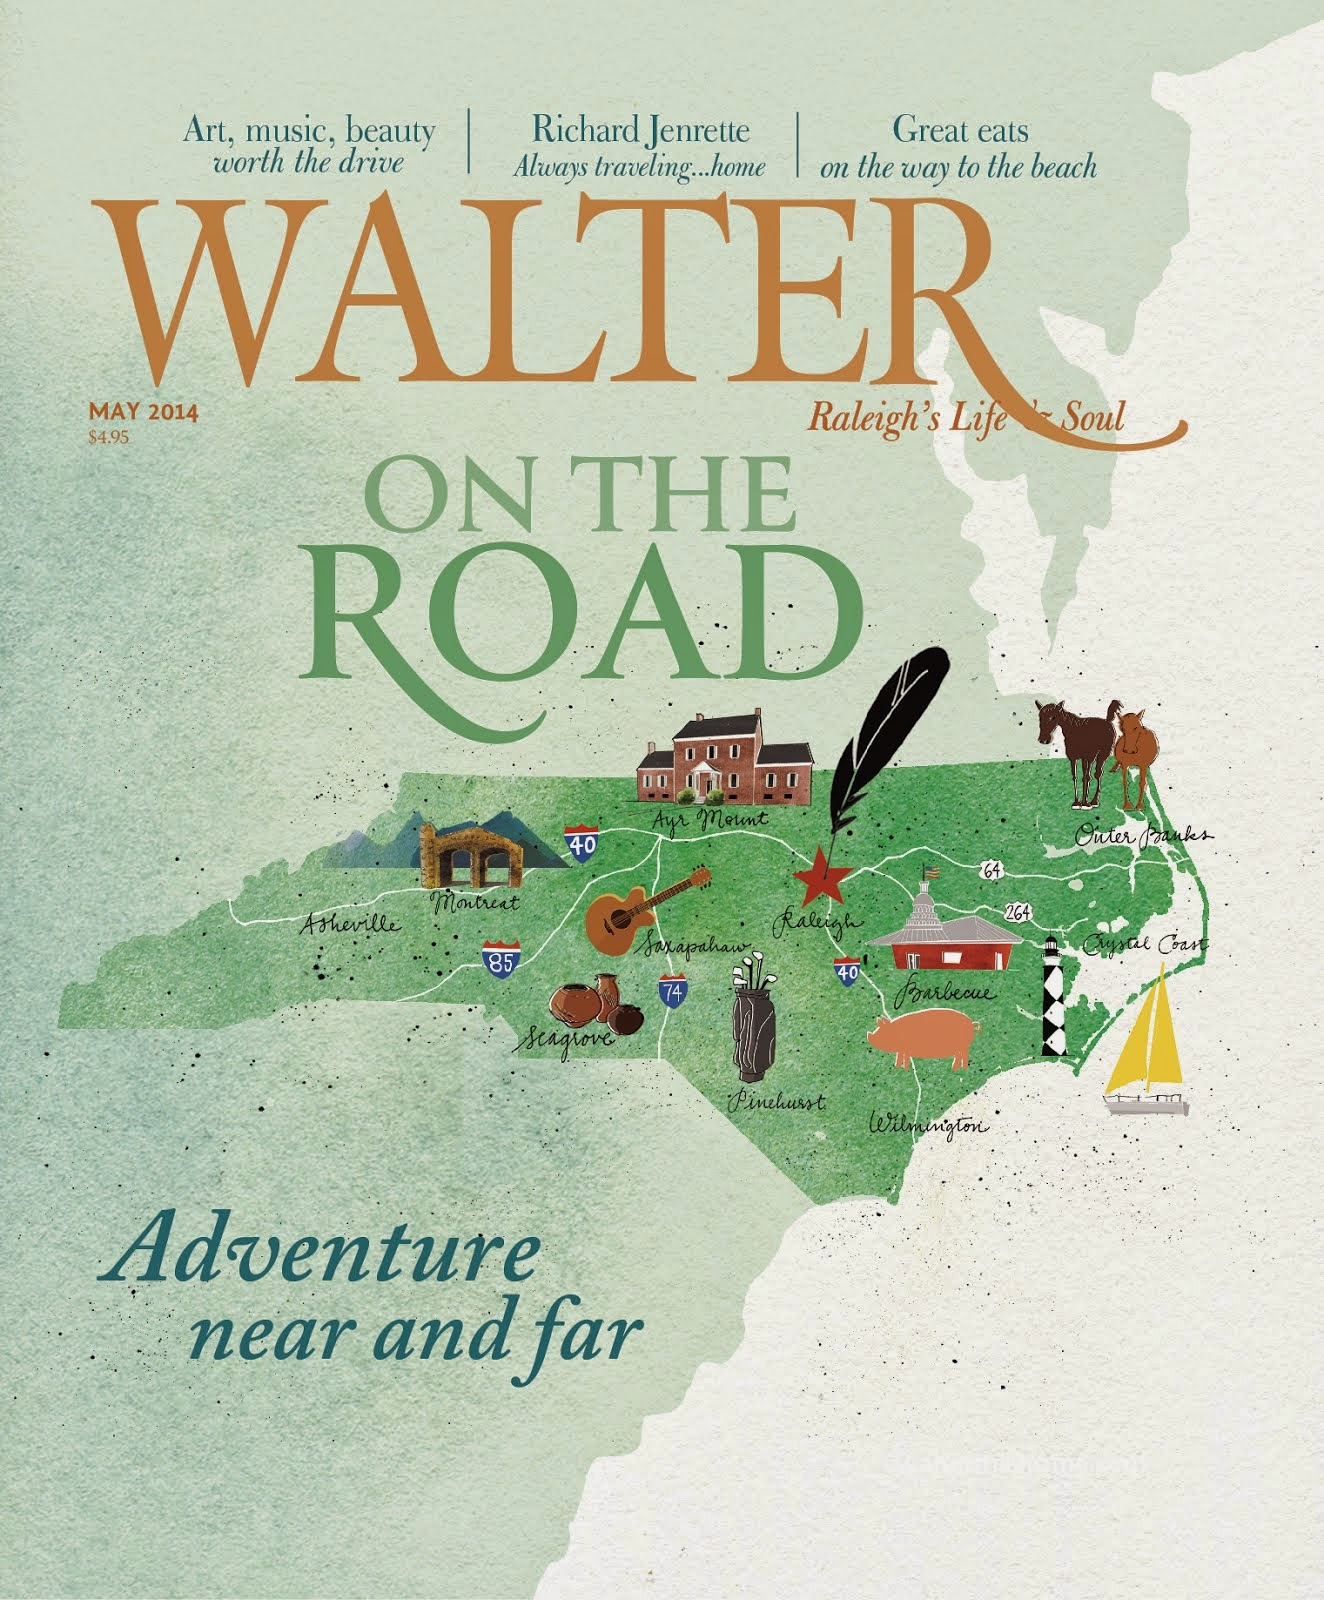 in WALTER: Profiling Richard Jenrette